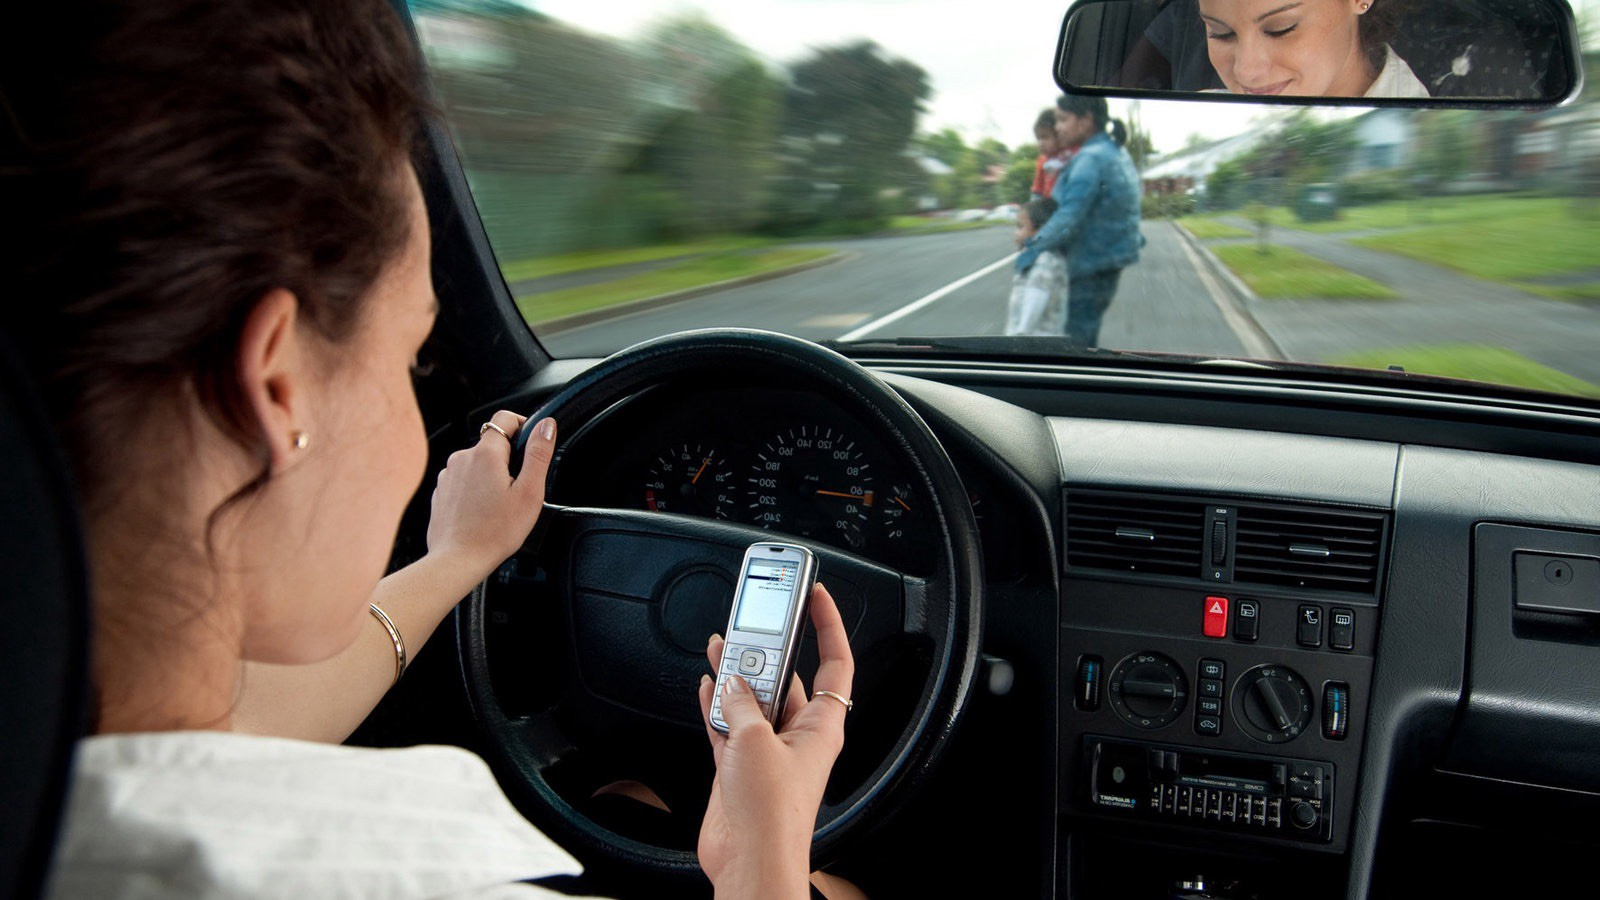 Texting While Driving >> New Study Finds Texting While Driving Only Dangerous If You Suck At It